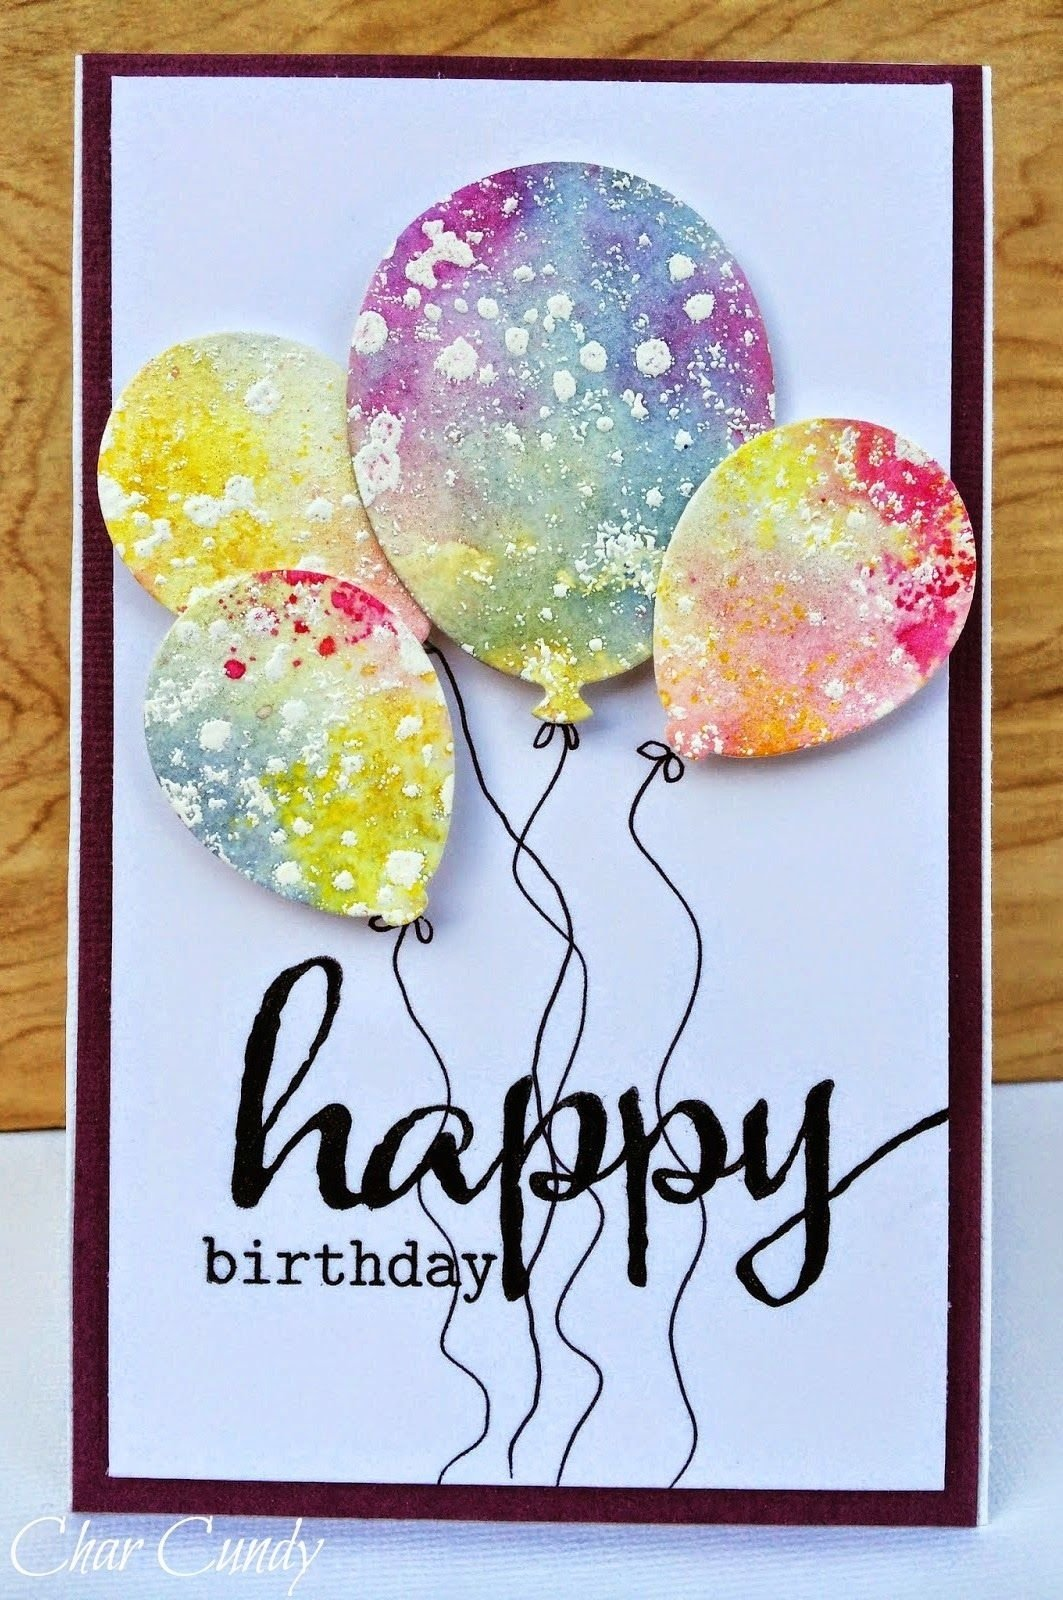 10 Elegant Ideas For A Birthday Card